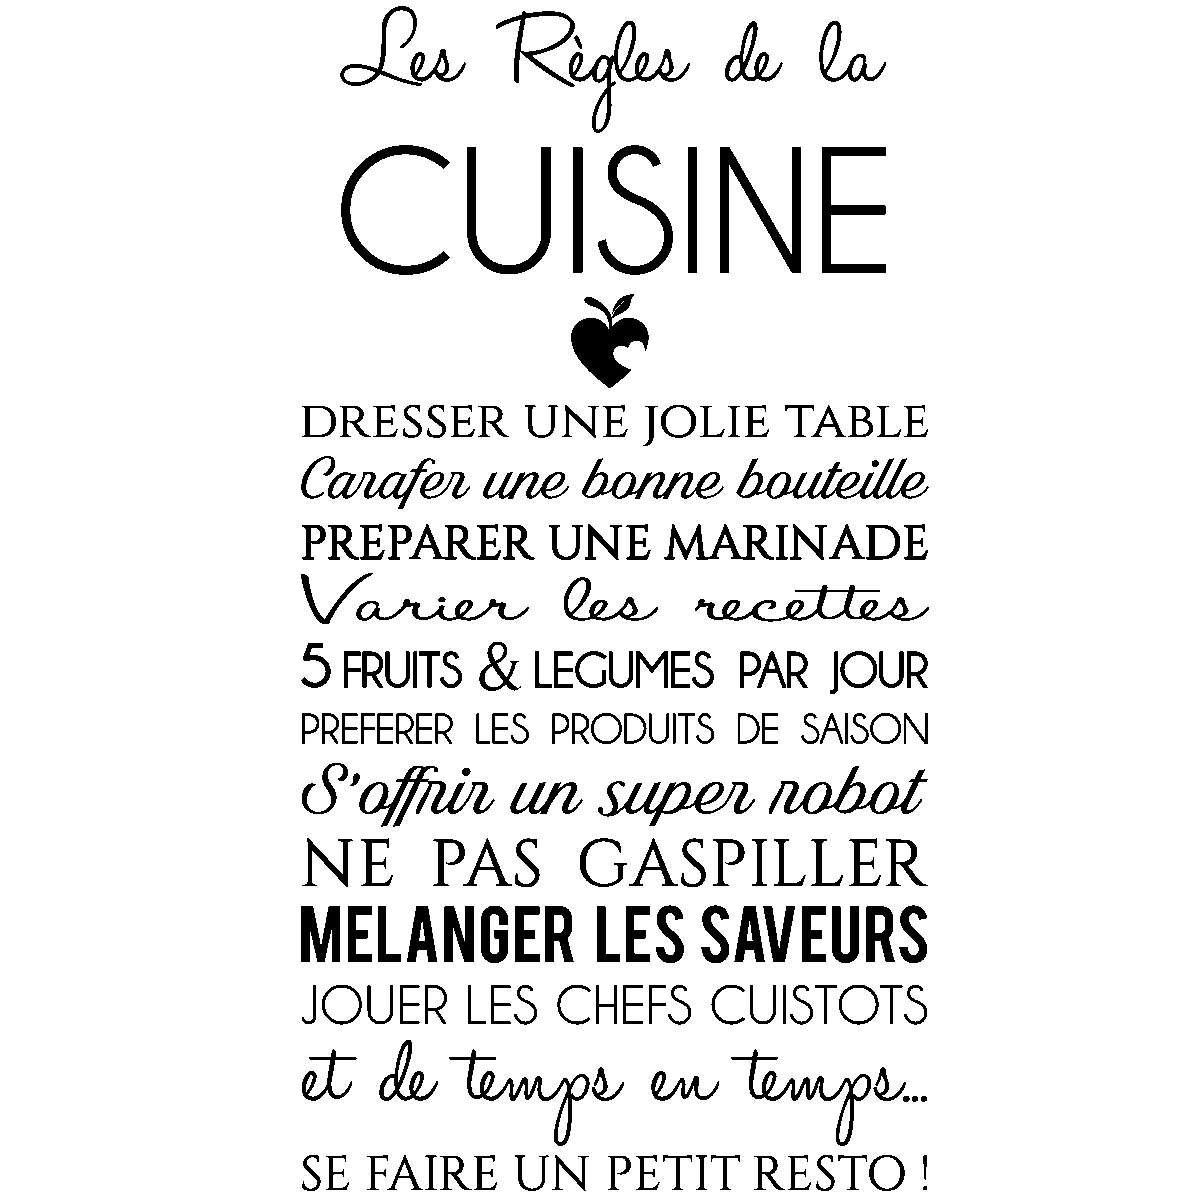 sticker citation les r gles de la cuisine stickers citations fran ais ambiance sticker. Black Bedroom Furniture Sets. Home Design Ideas